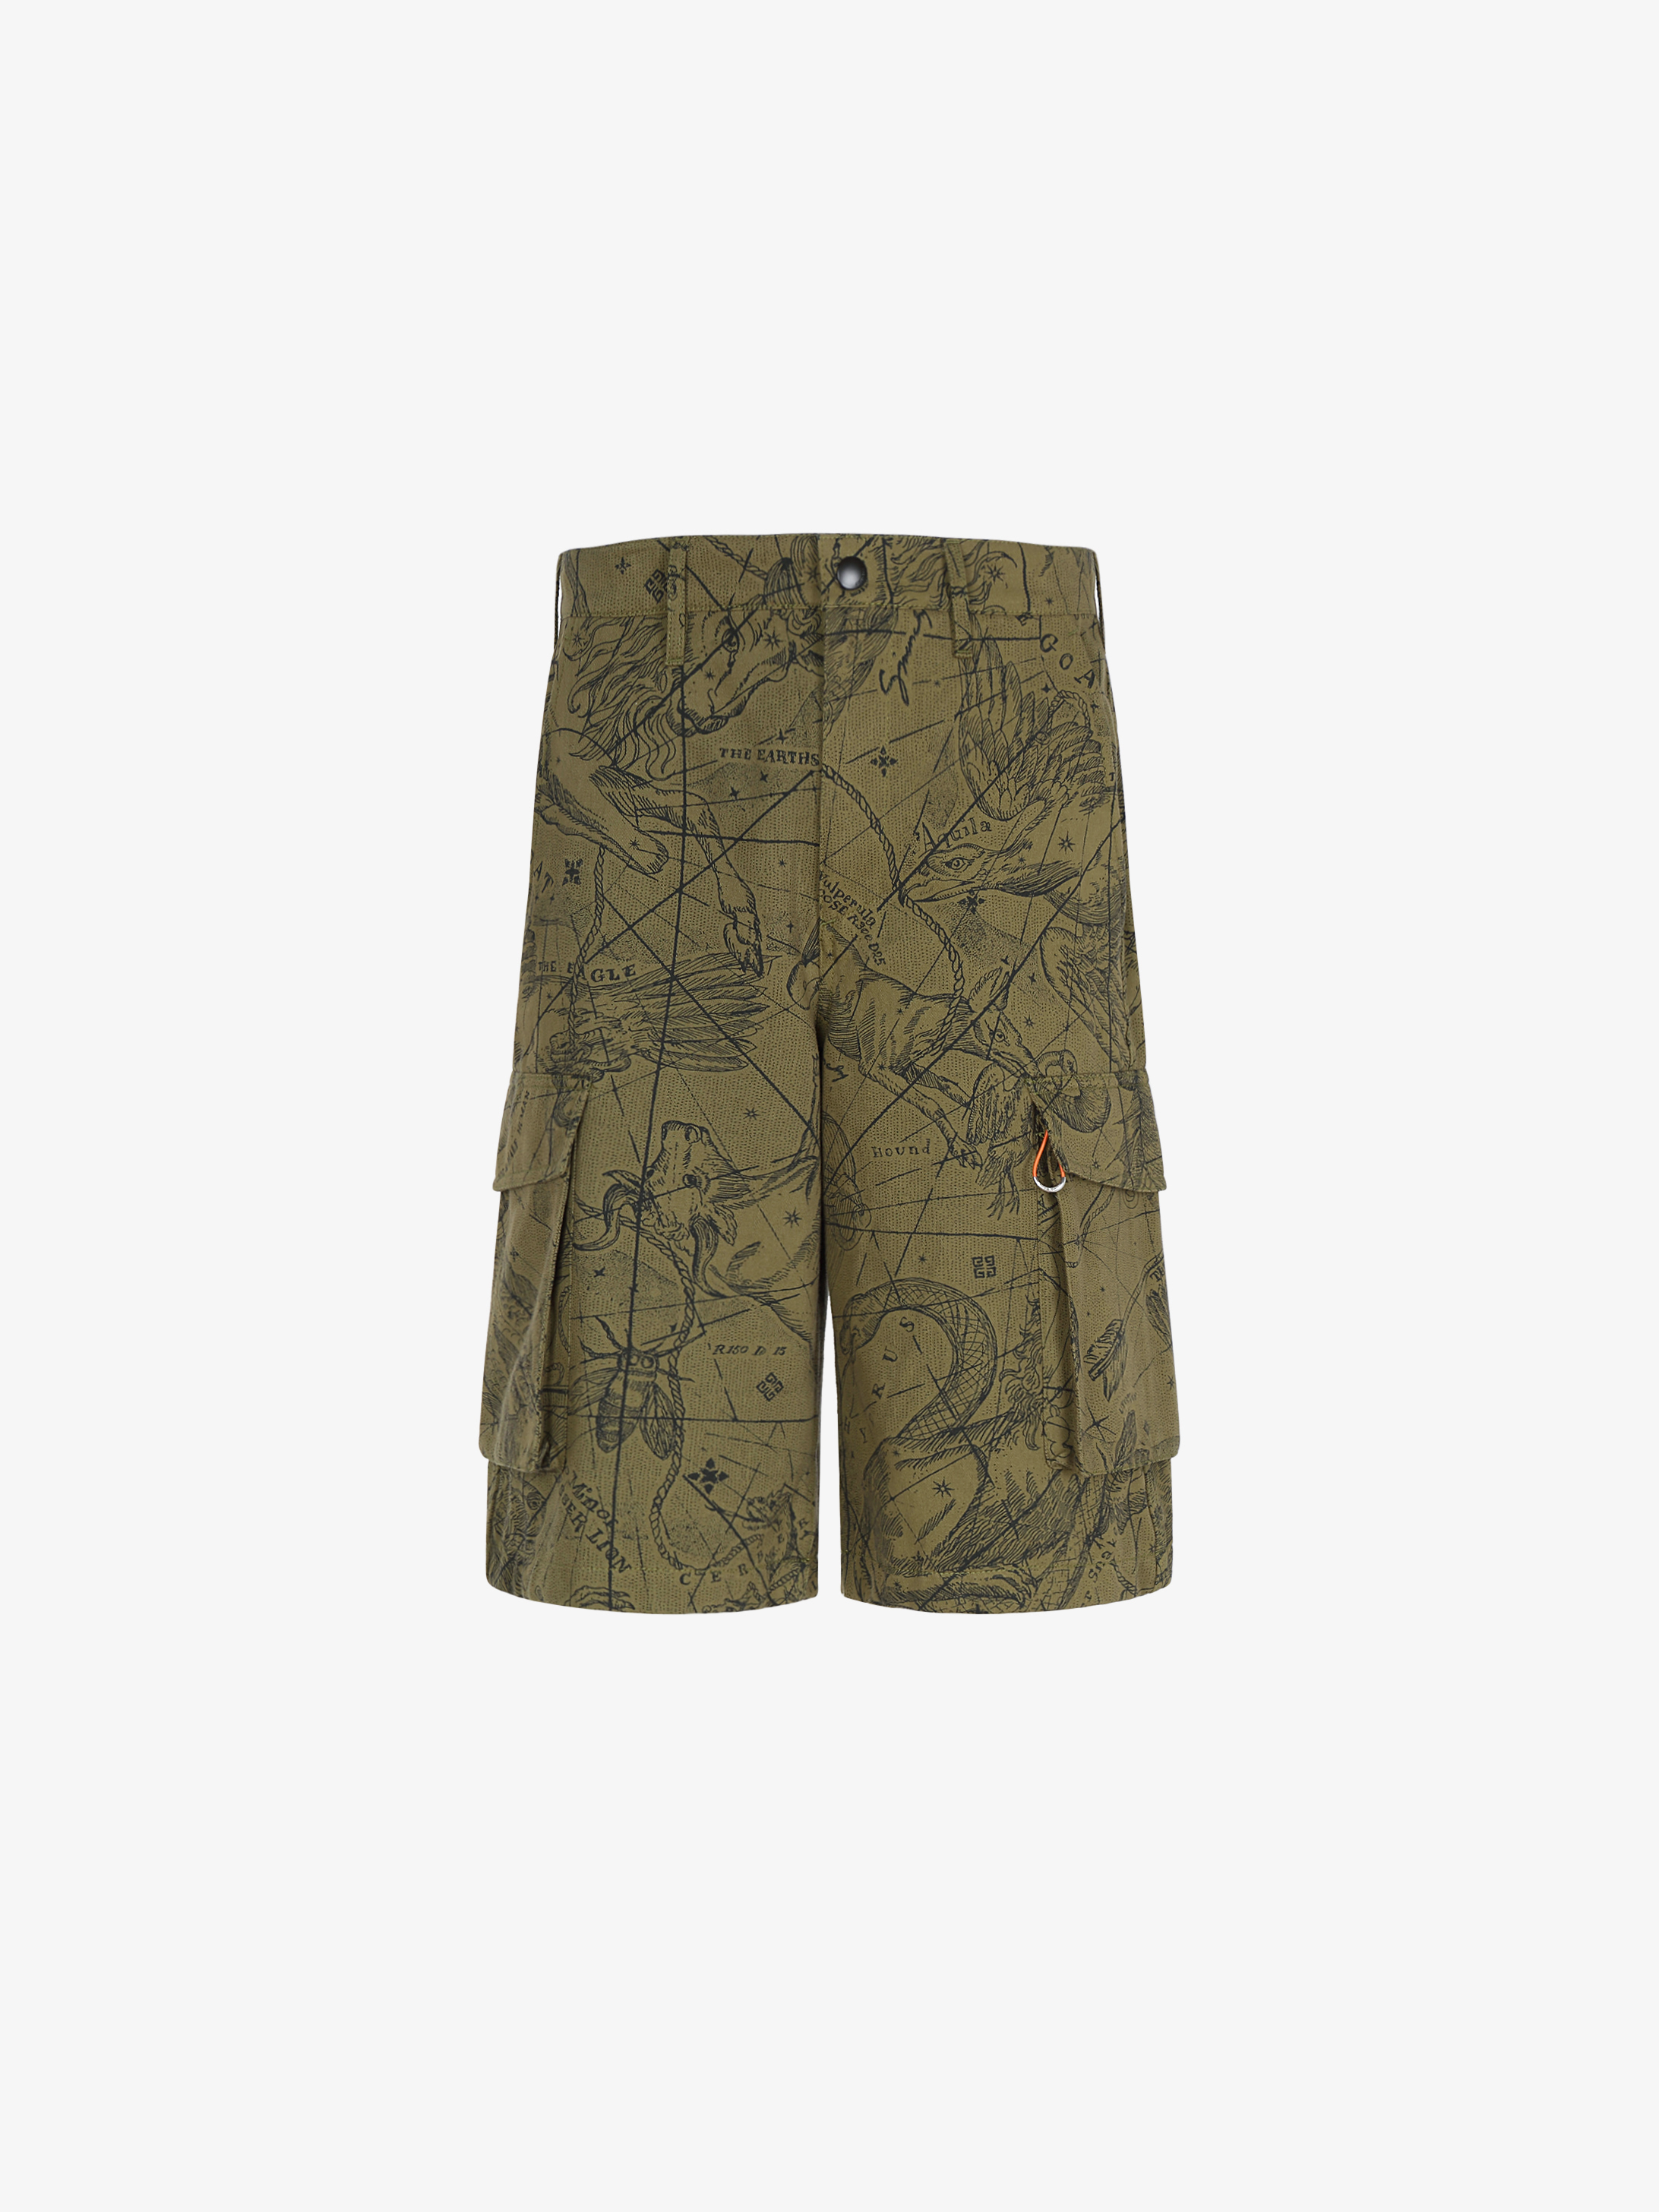 Astral printed multipockets cargo short pants